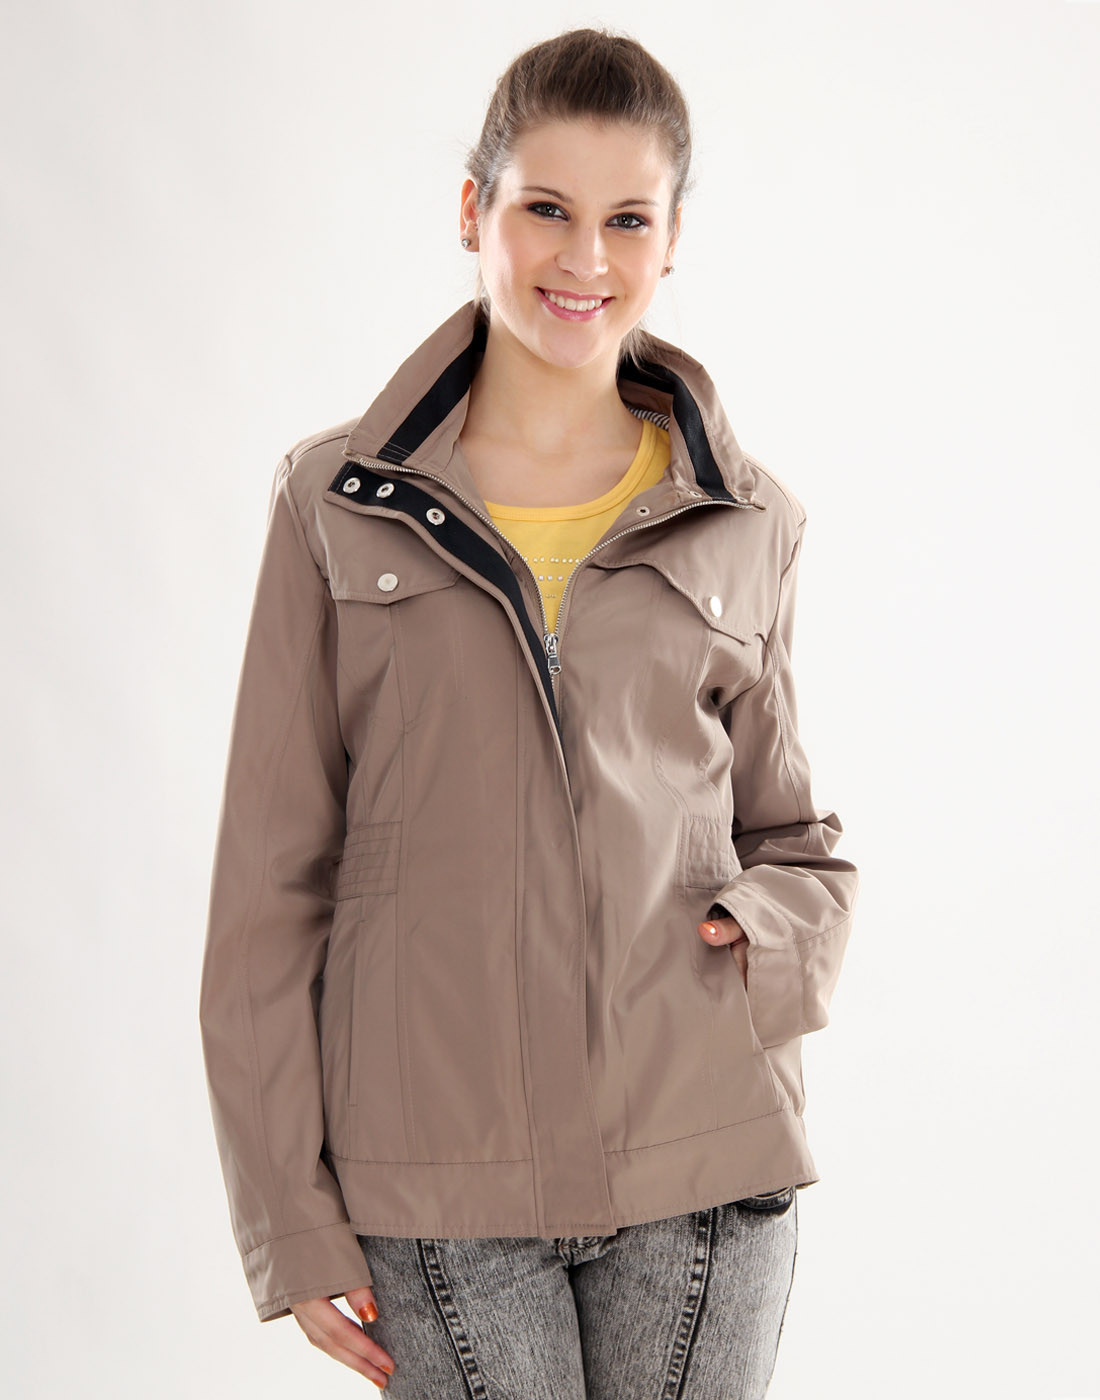 Sportelle USA India Full Sleeve Solid Womens Jacket